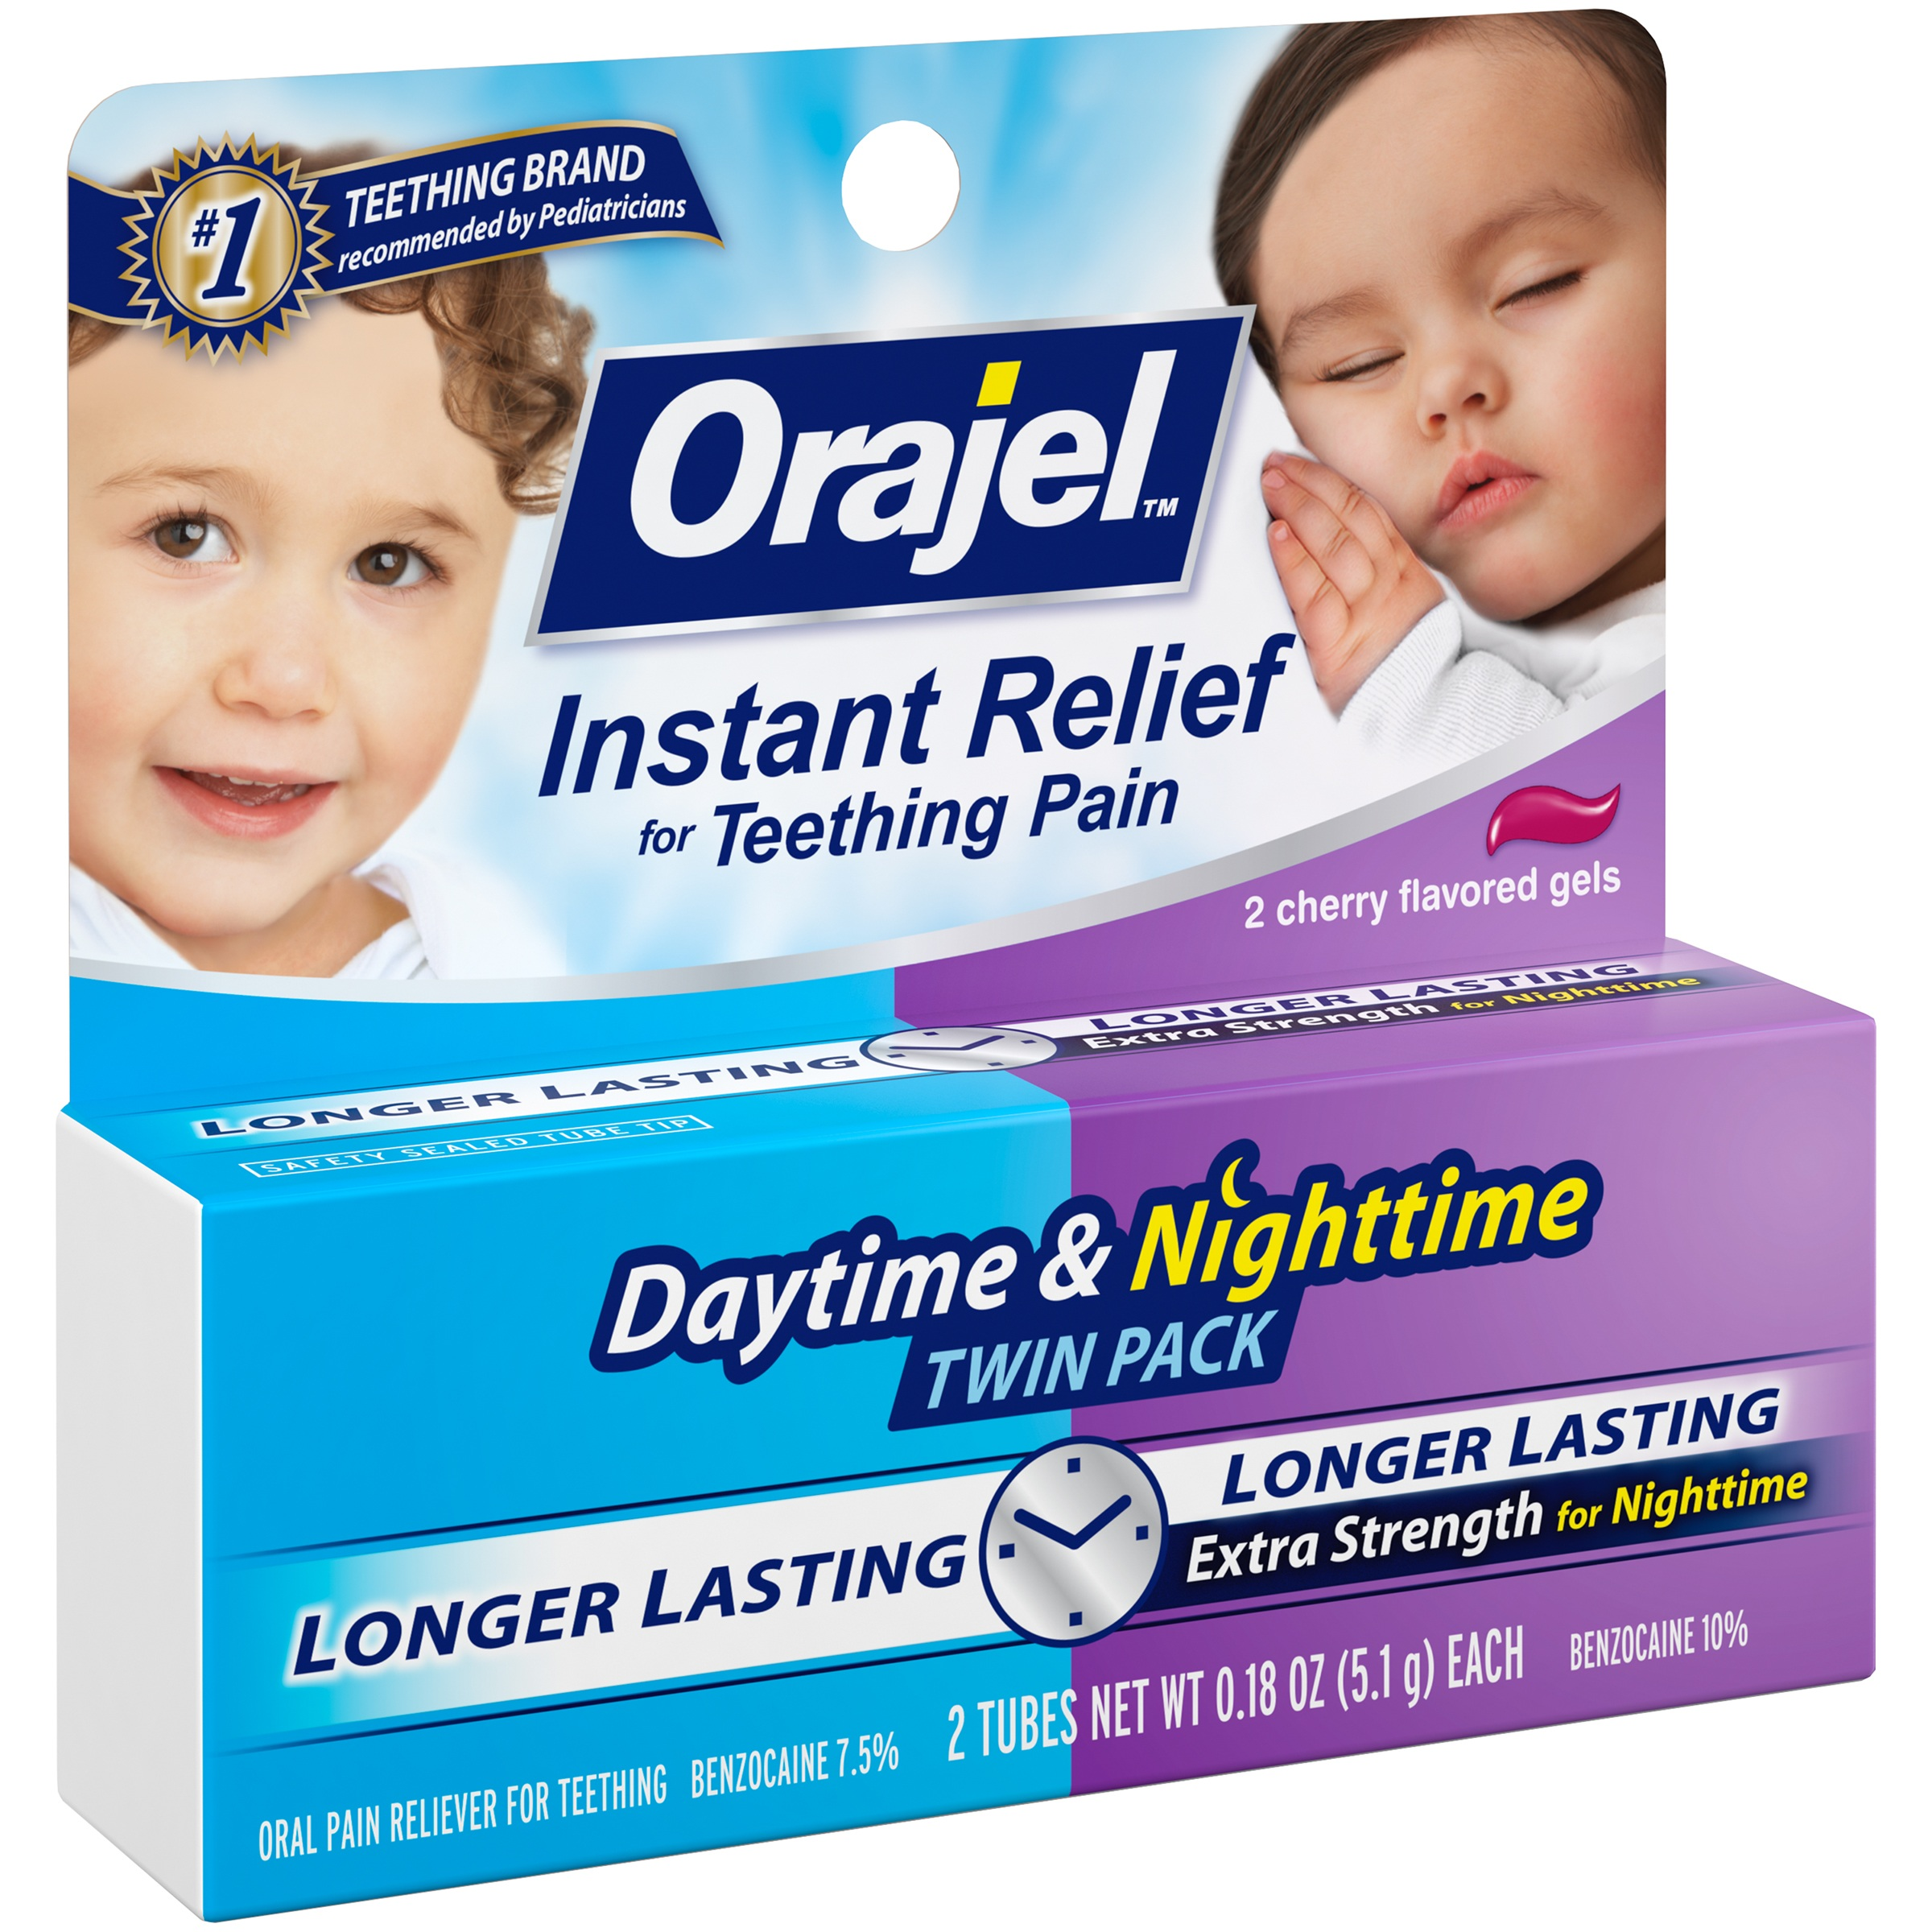 Orajel™ Instant Relief for Teething Pain Daytime & Nighttime Twin Pack Cherry Flavored Gels Oral Pain Reliever